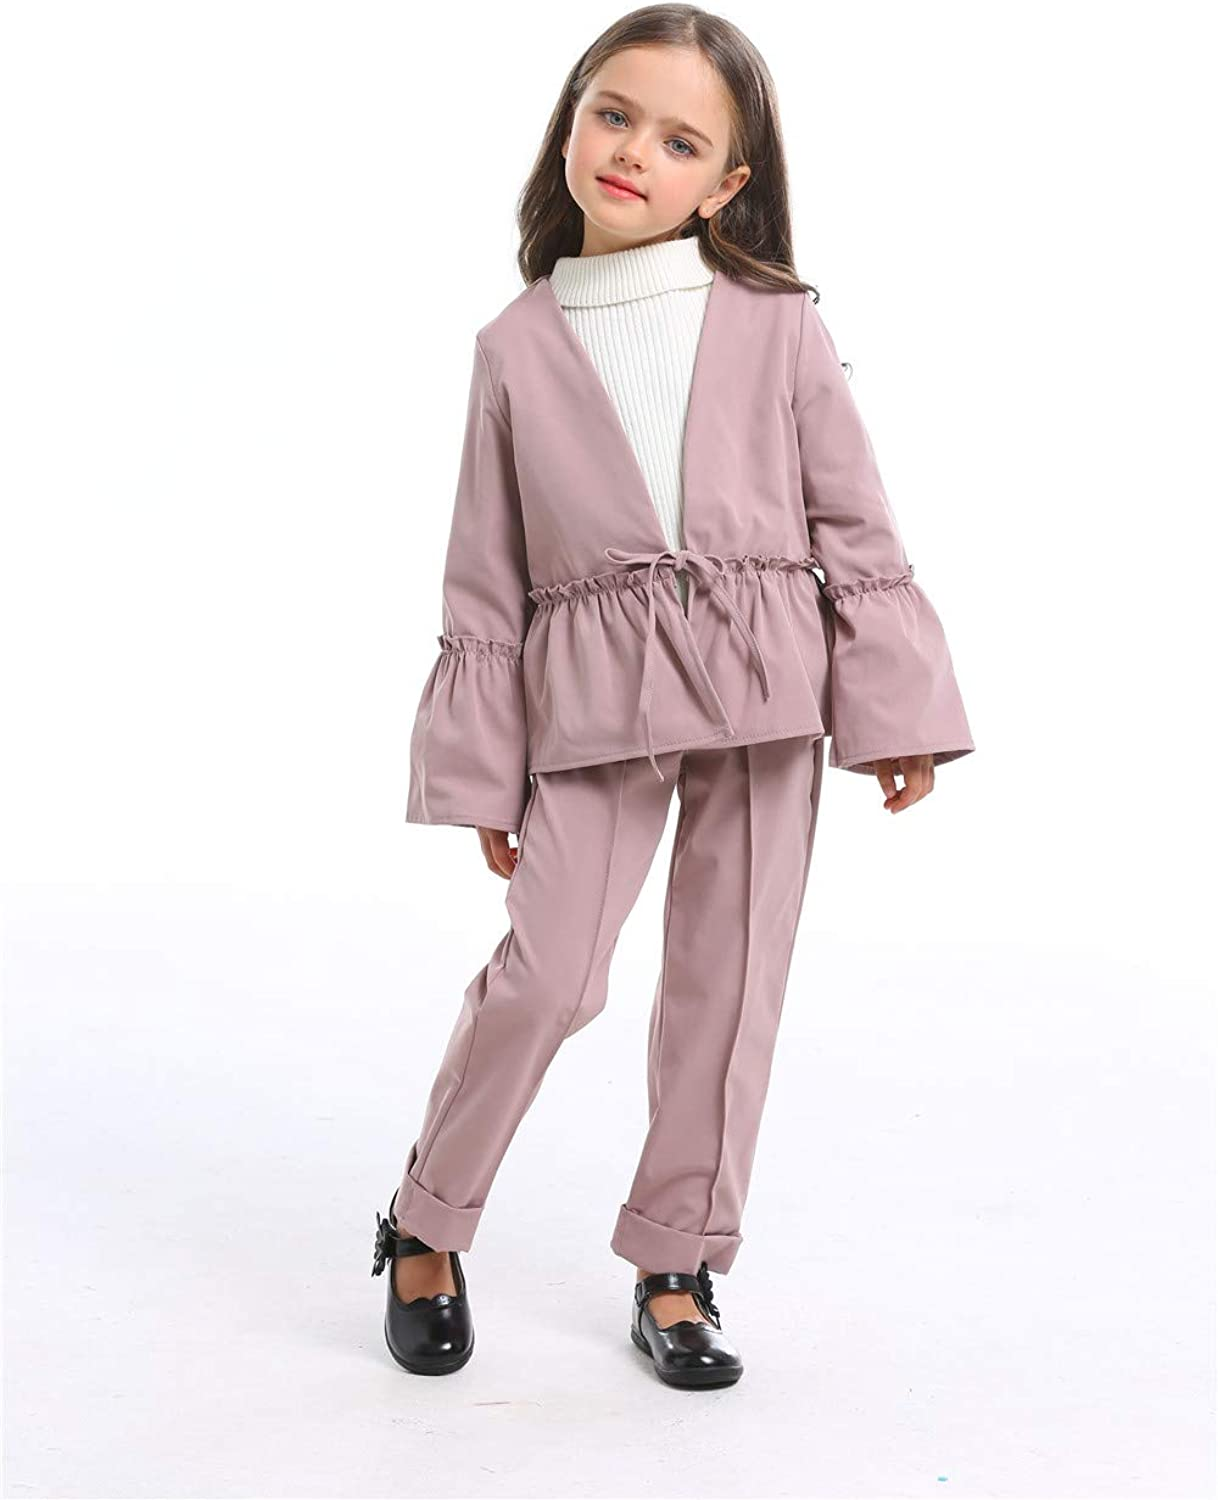 Little Girls 2 Pieces Set Halloween Outfit Long Sleeve Hoodie Top Pants Clothing